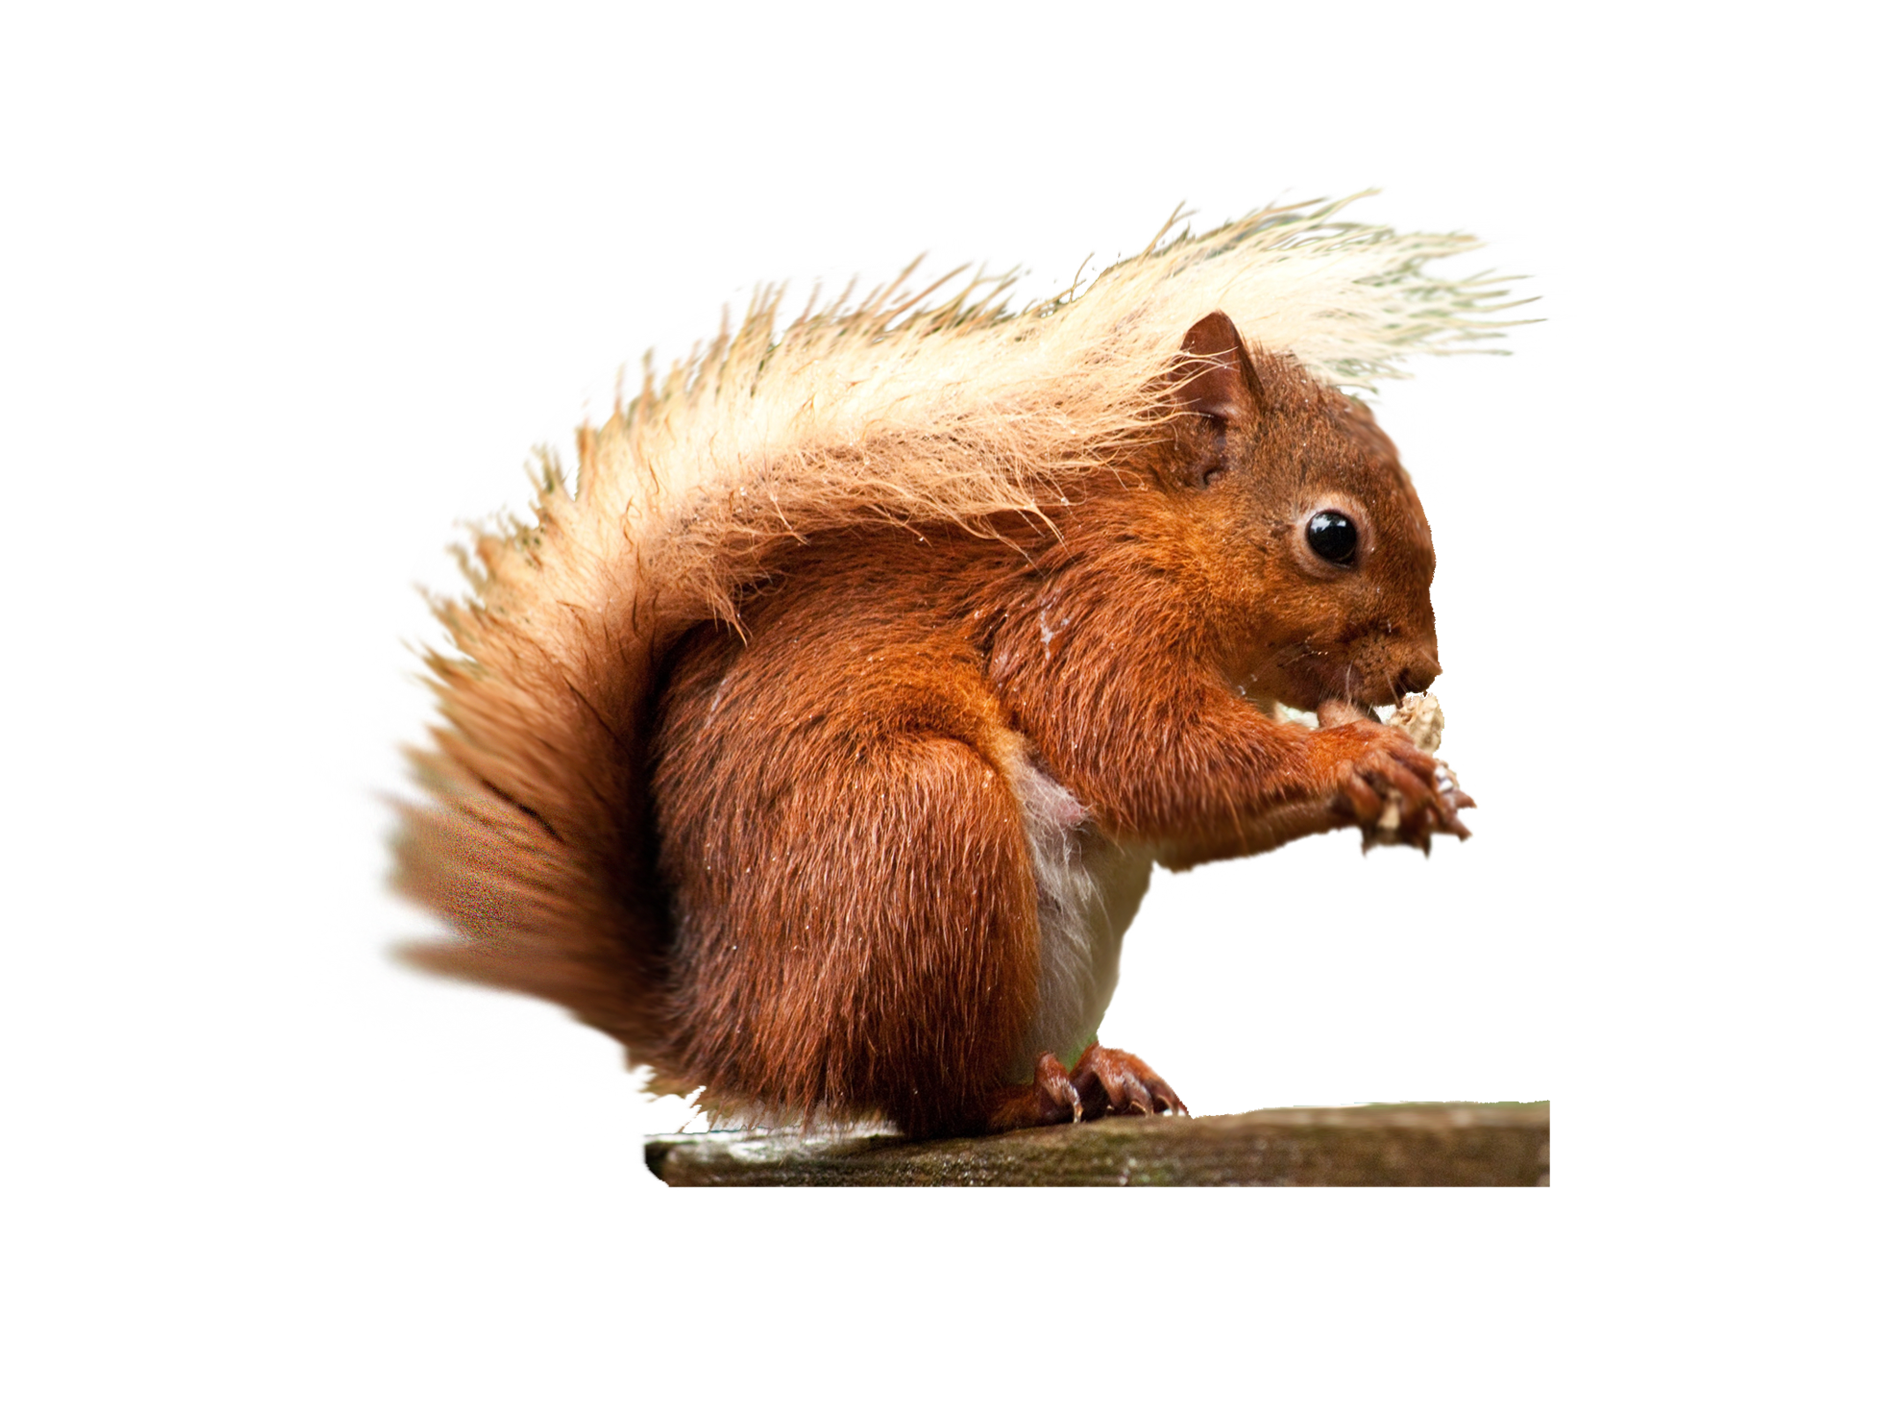 download squirrel png transparent images images #37001